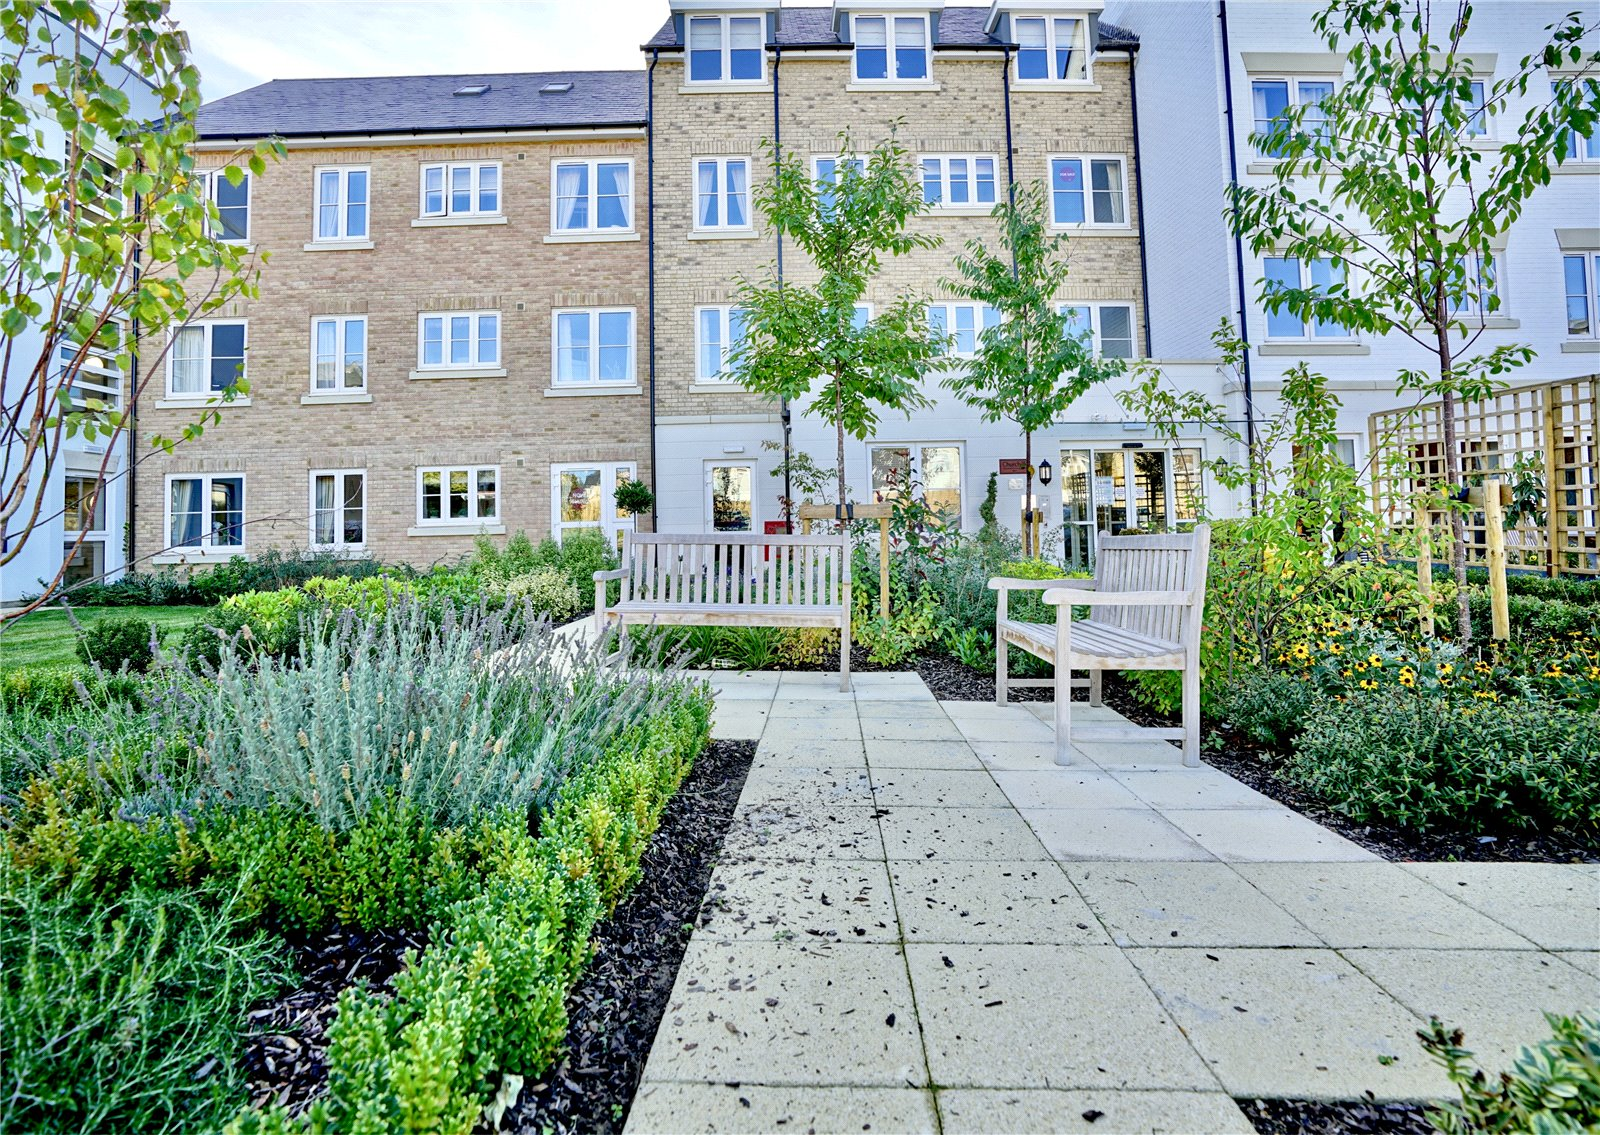 1 bed apartment for sale in Edison Bell Way, PE29 3FD  - Property Image 1